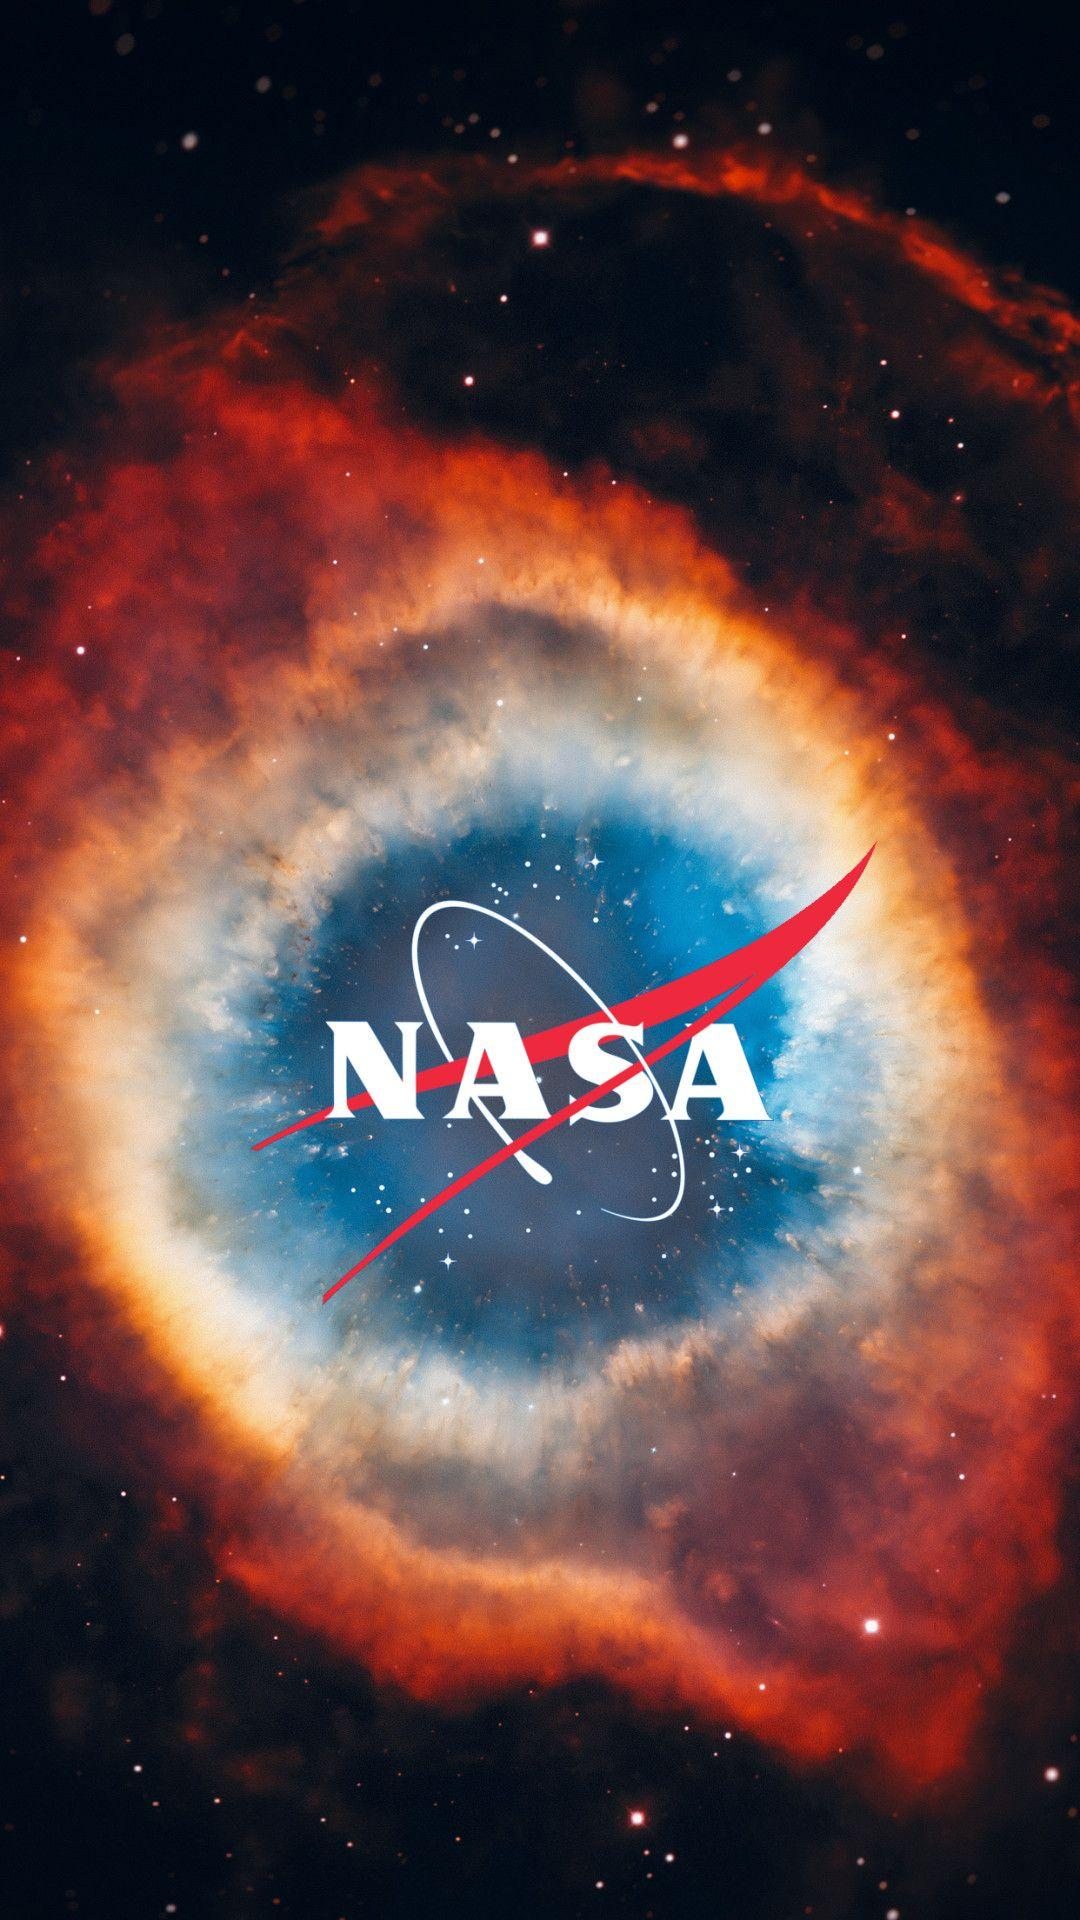 Nasa old logo wallpapers wallpaper cave - Nasa space wallpaper ...